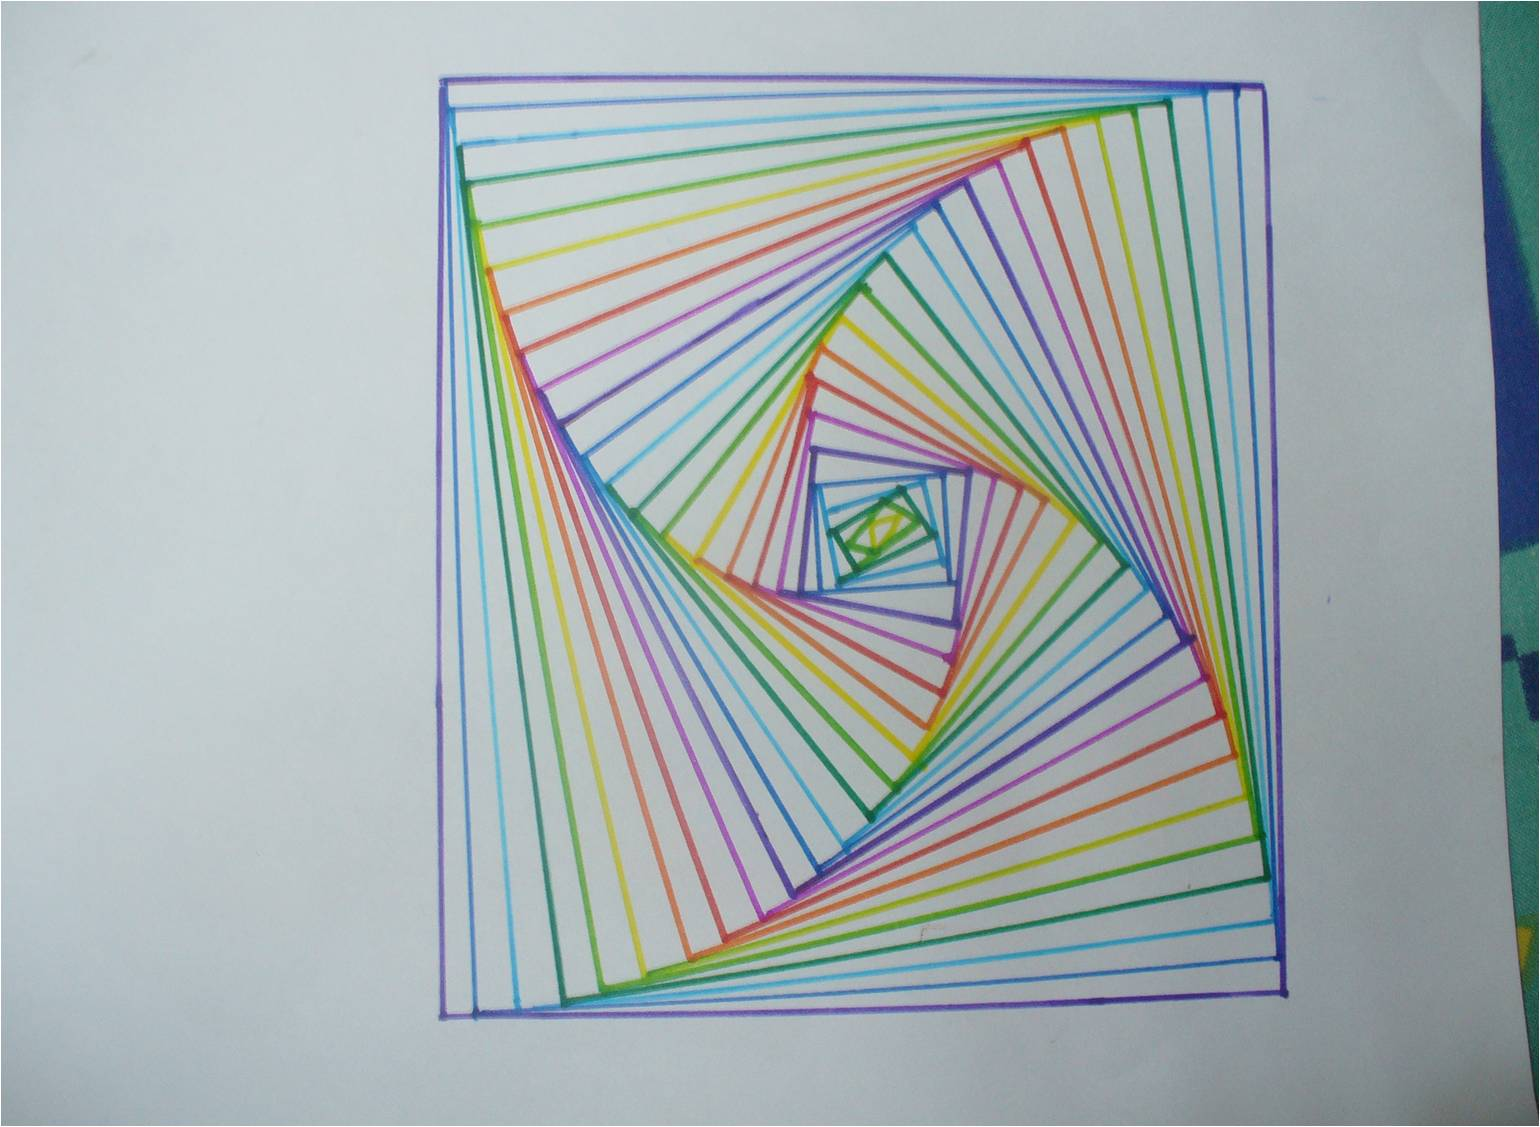 Geometry Line Design Project : Geometric line design math worksheet best free